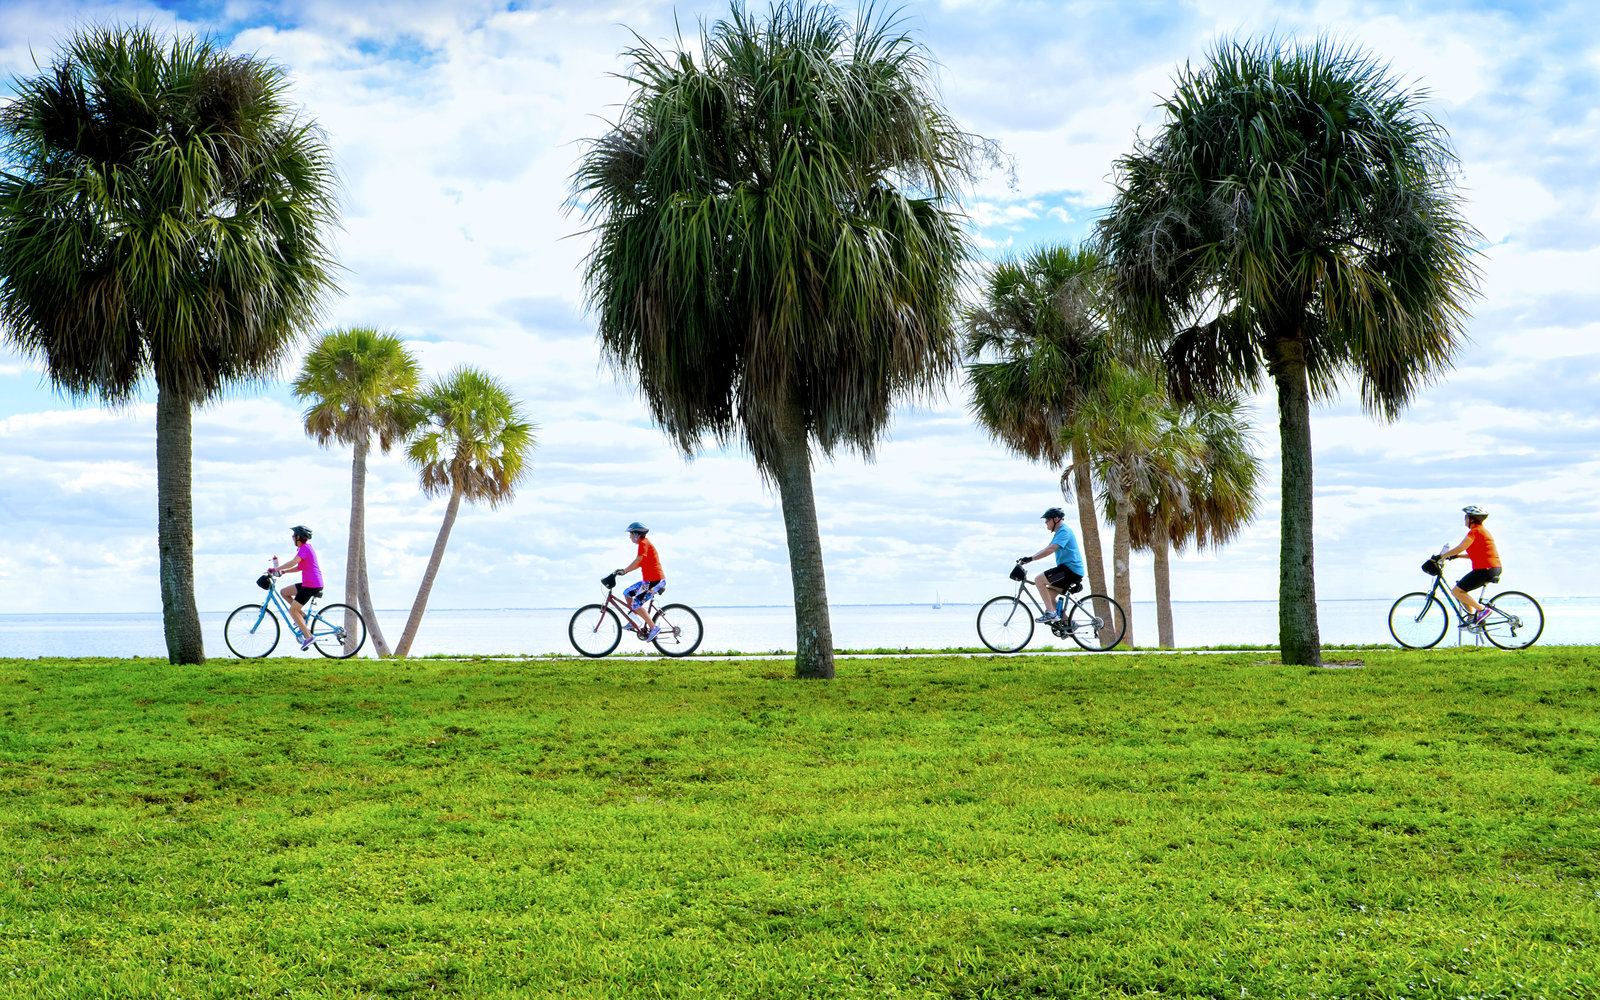 Bicycling along Tampa Bay in one of the waterfront parks in Saint Petersburg, Florida.